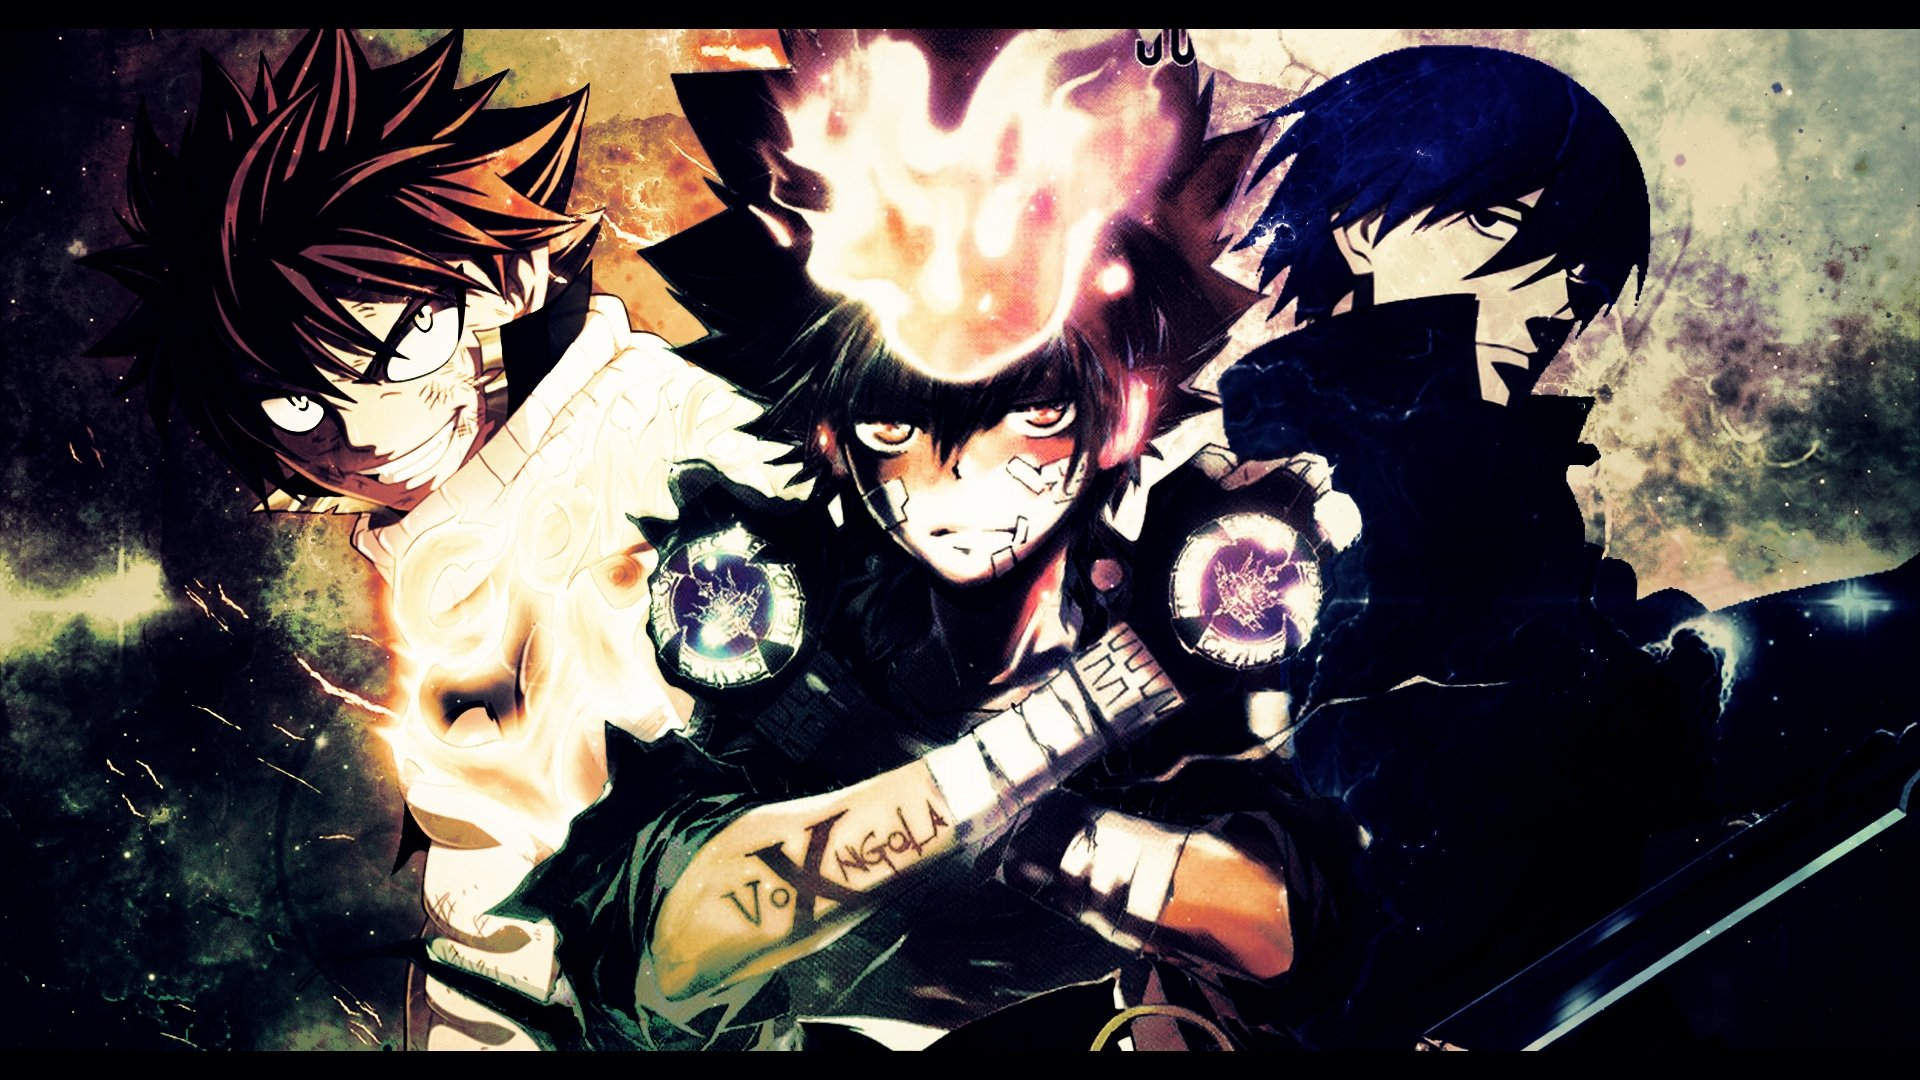 Download bunch of anime characters hd wallpaper HD wallpaper 1920x1080